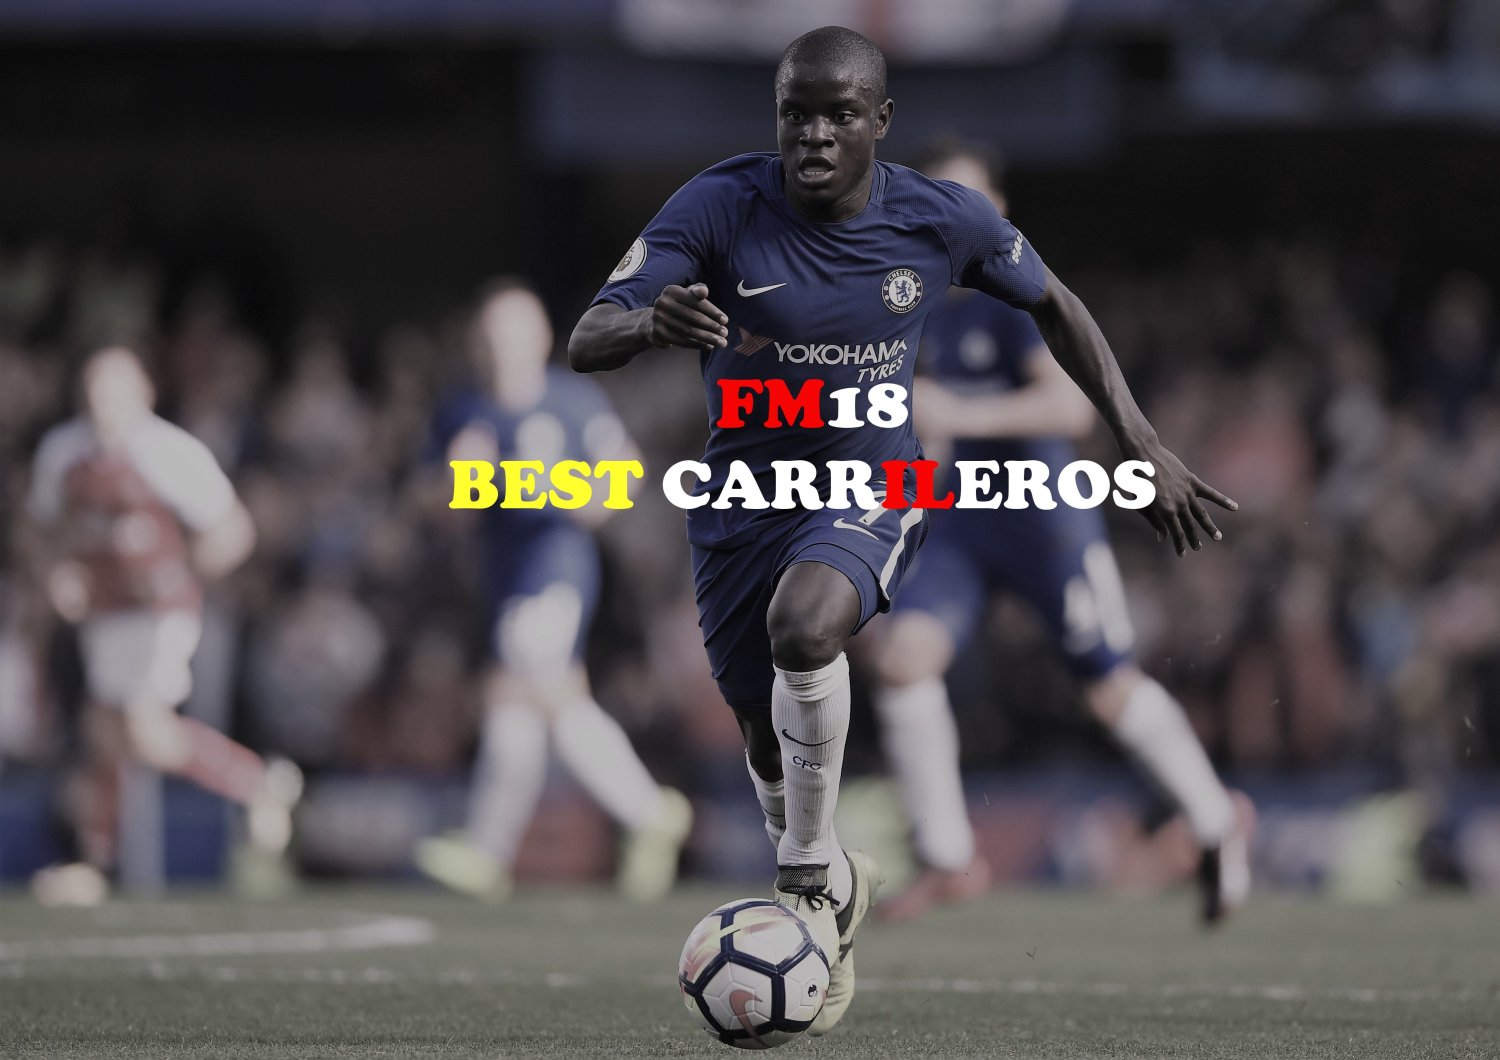 Best Carrileros in FM18